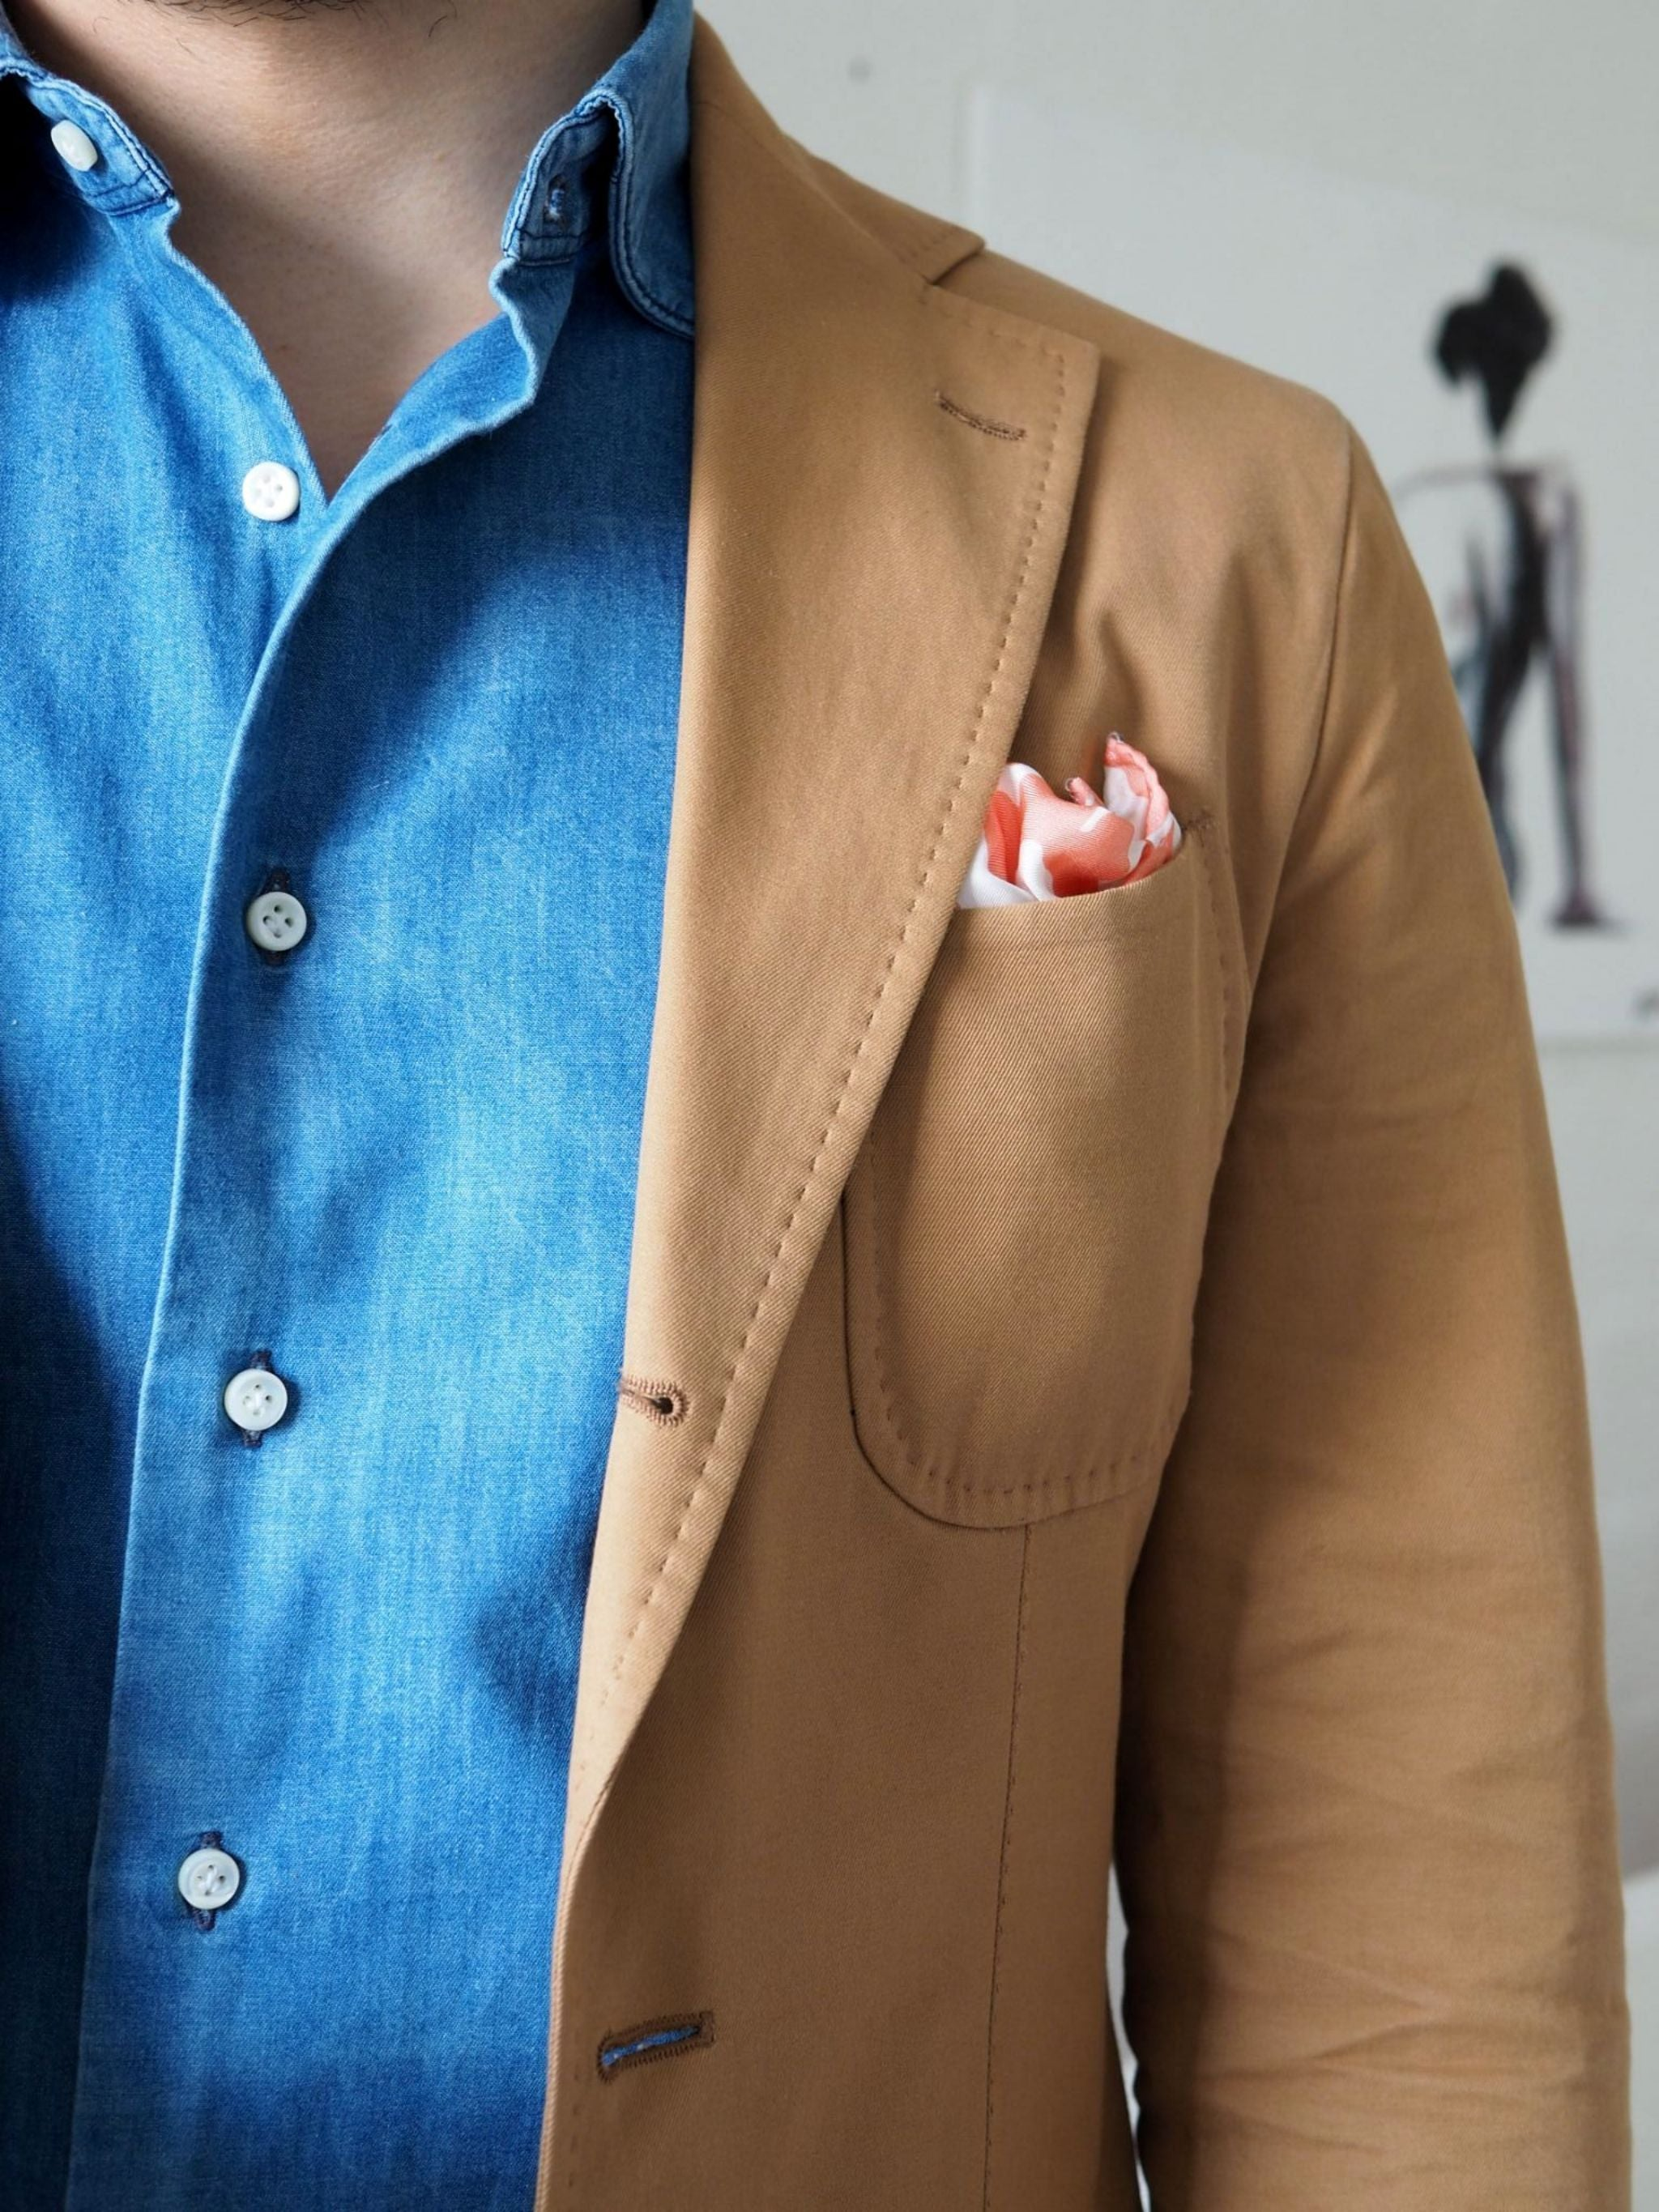 Favorite suits - shades of light brown, blue and pink.